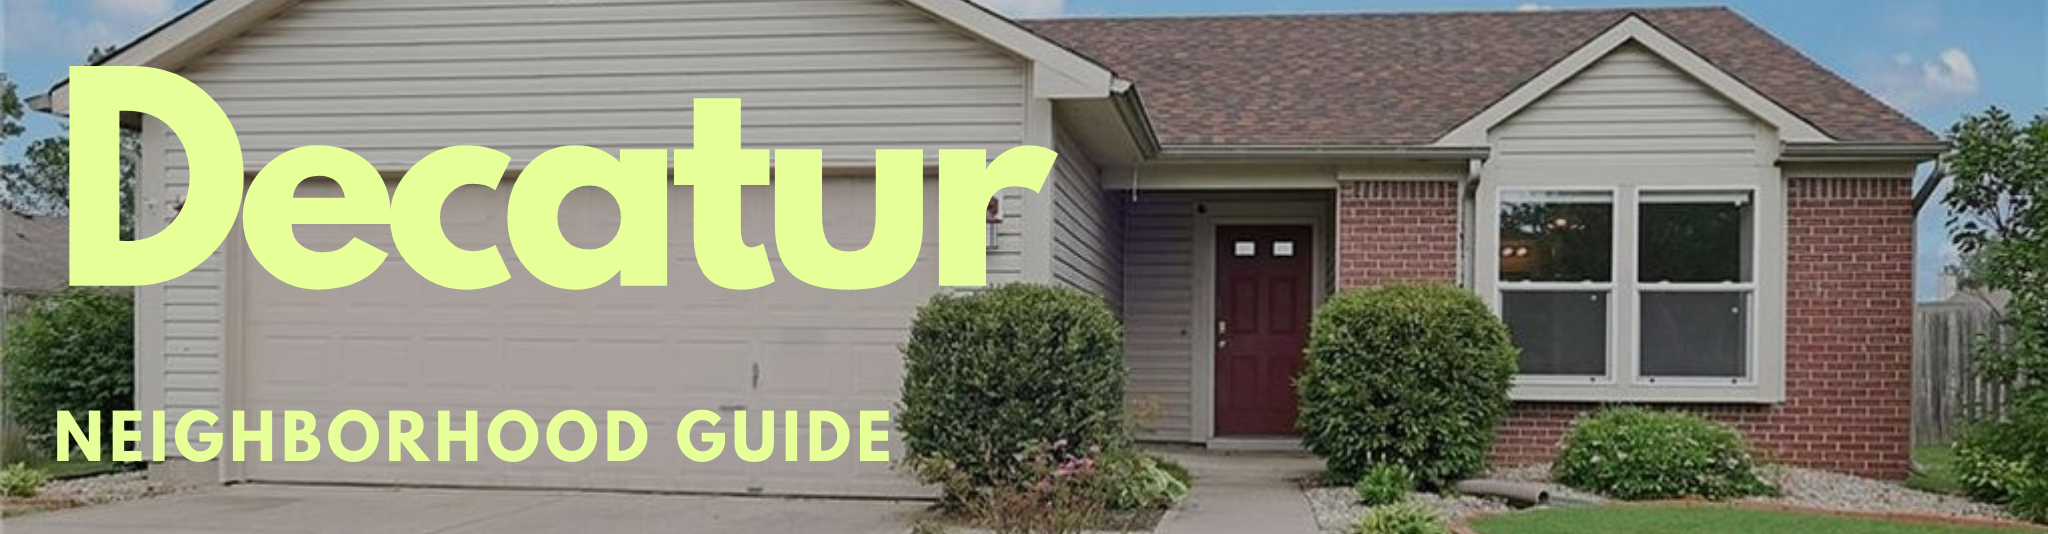 Decatur township marion county indianapolis indiana real estate guide